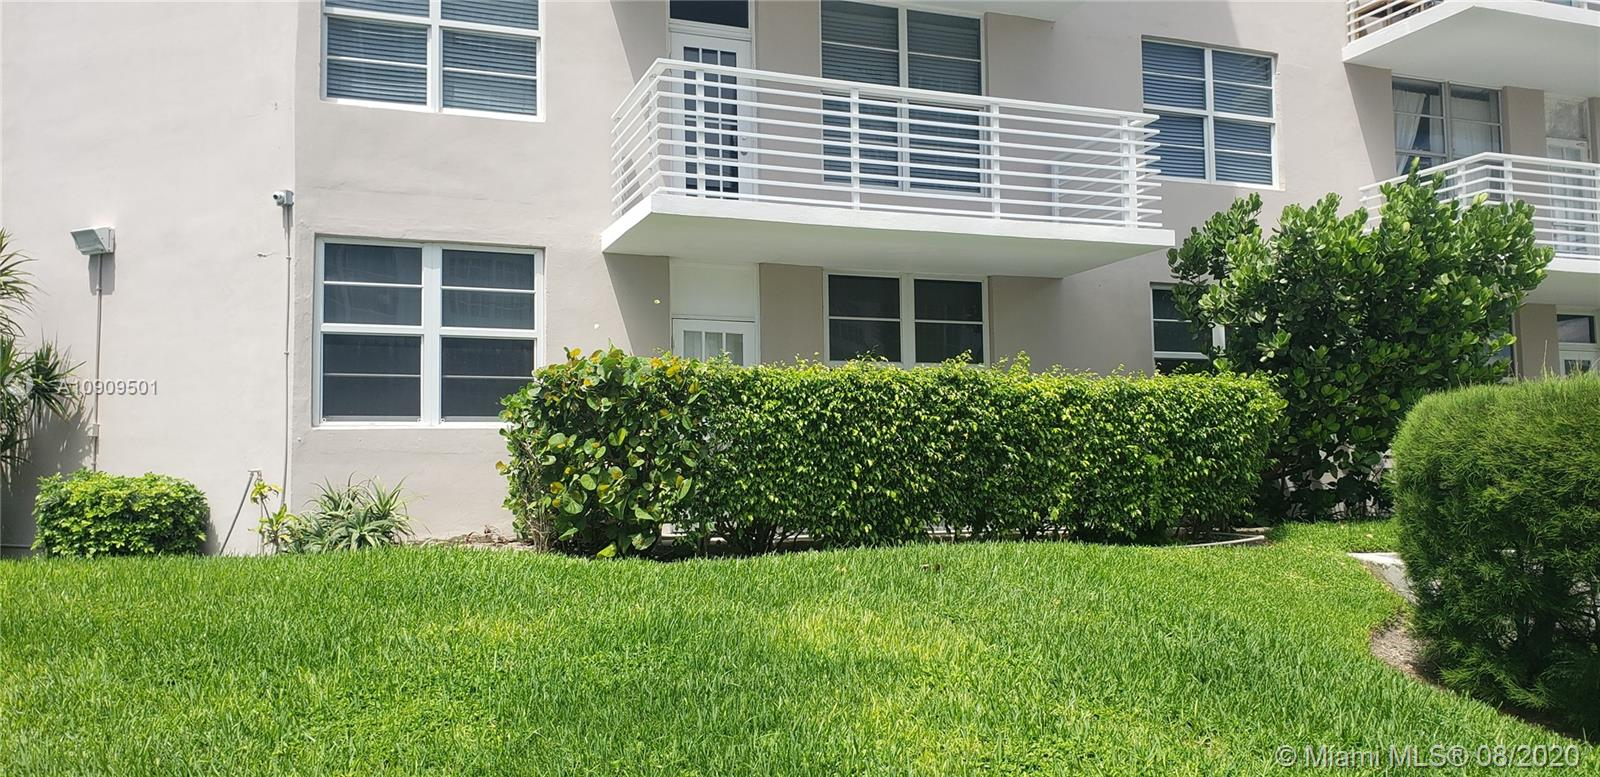 2851 S Ocean Blvd #0221 For Sale A10909501, FL